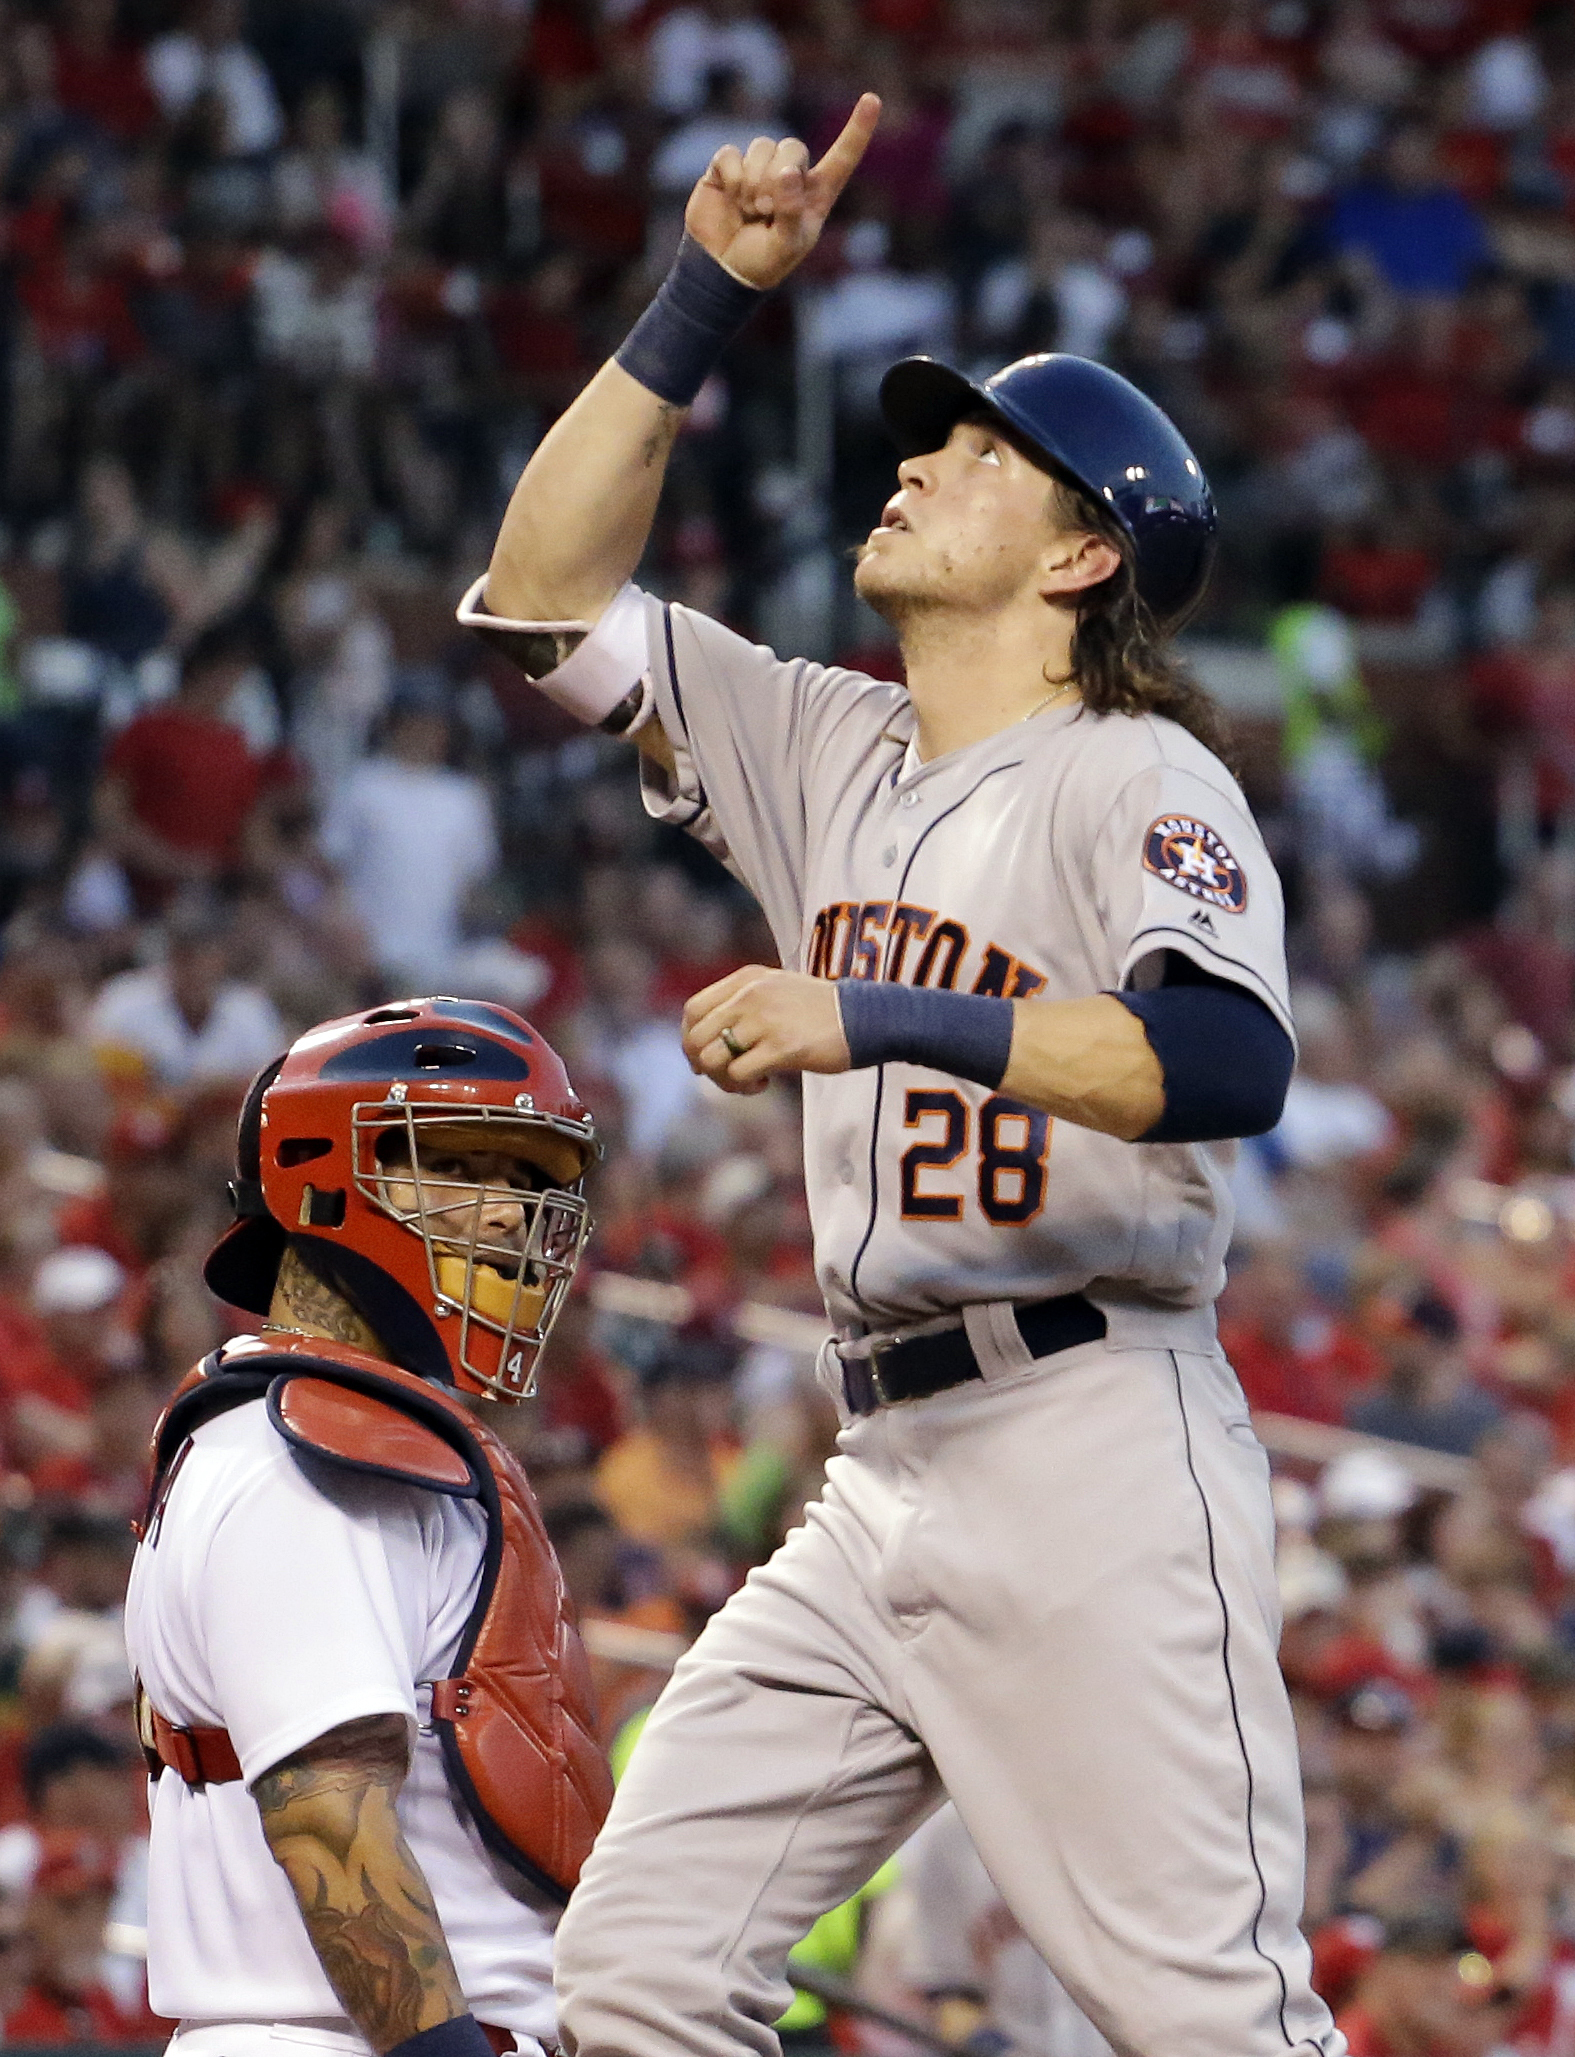 Houston Astros' Colby Rasmus celebrates after hitting a solo home run, next to St. Louis Cardinals catcher Yadier Molina during the fifth inning of a baseball game Tuesday, June 14, 2016, in St. Louis. (AP Photo/Jeff Roberson)